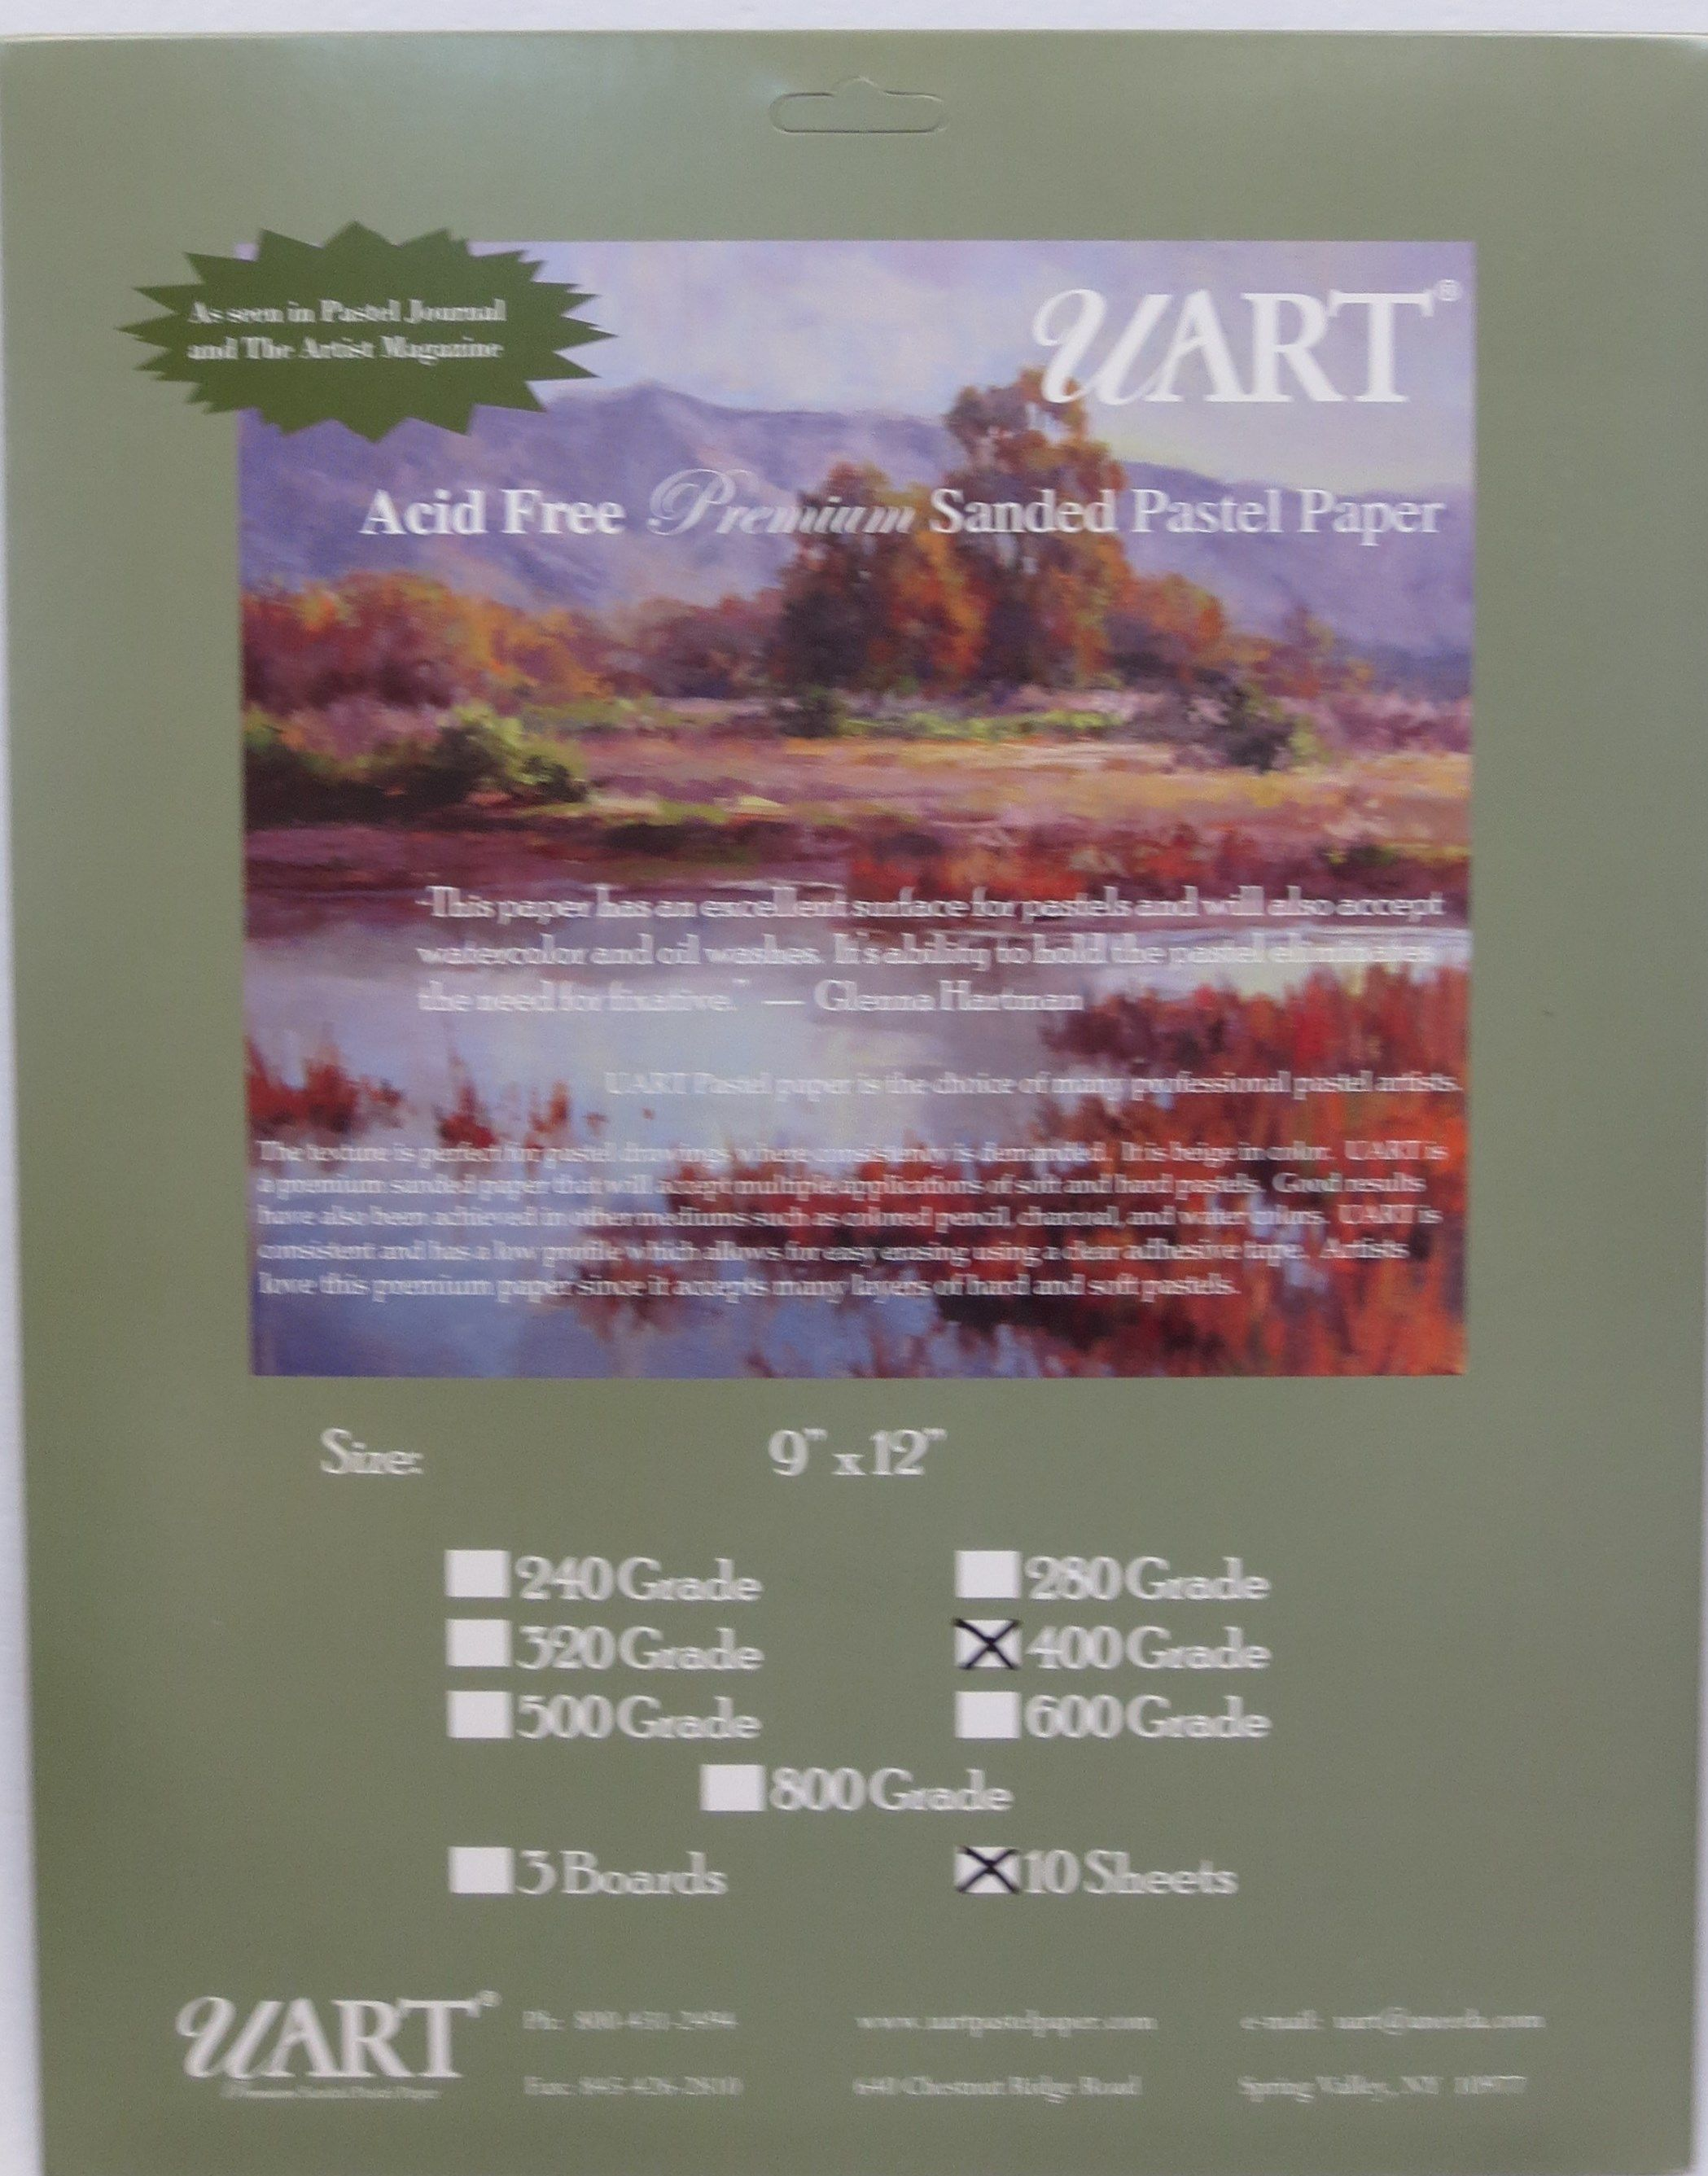 uart premium sanded pastel paper i use 280 grade which is very